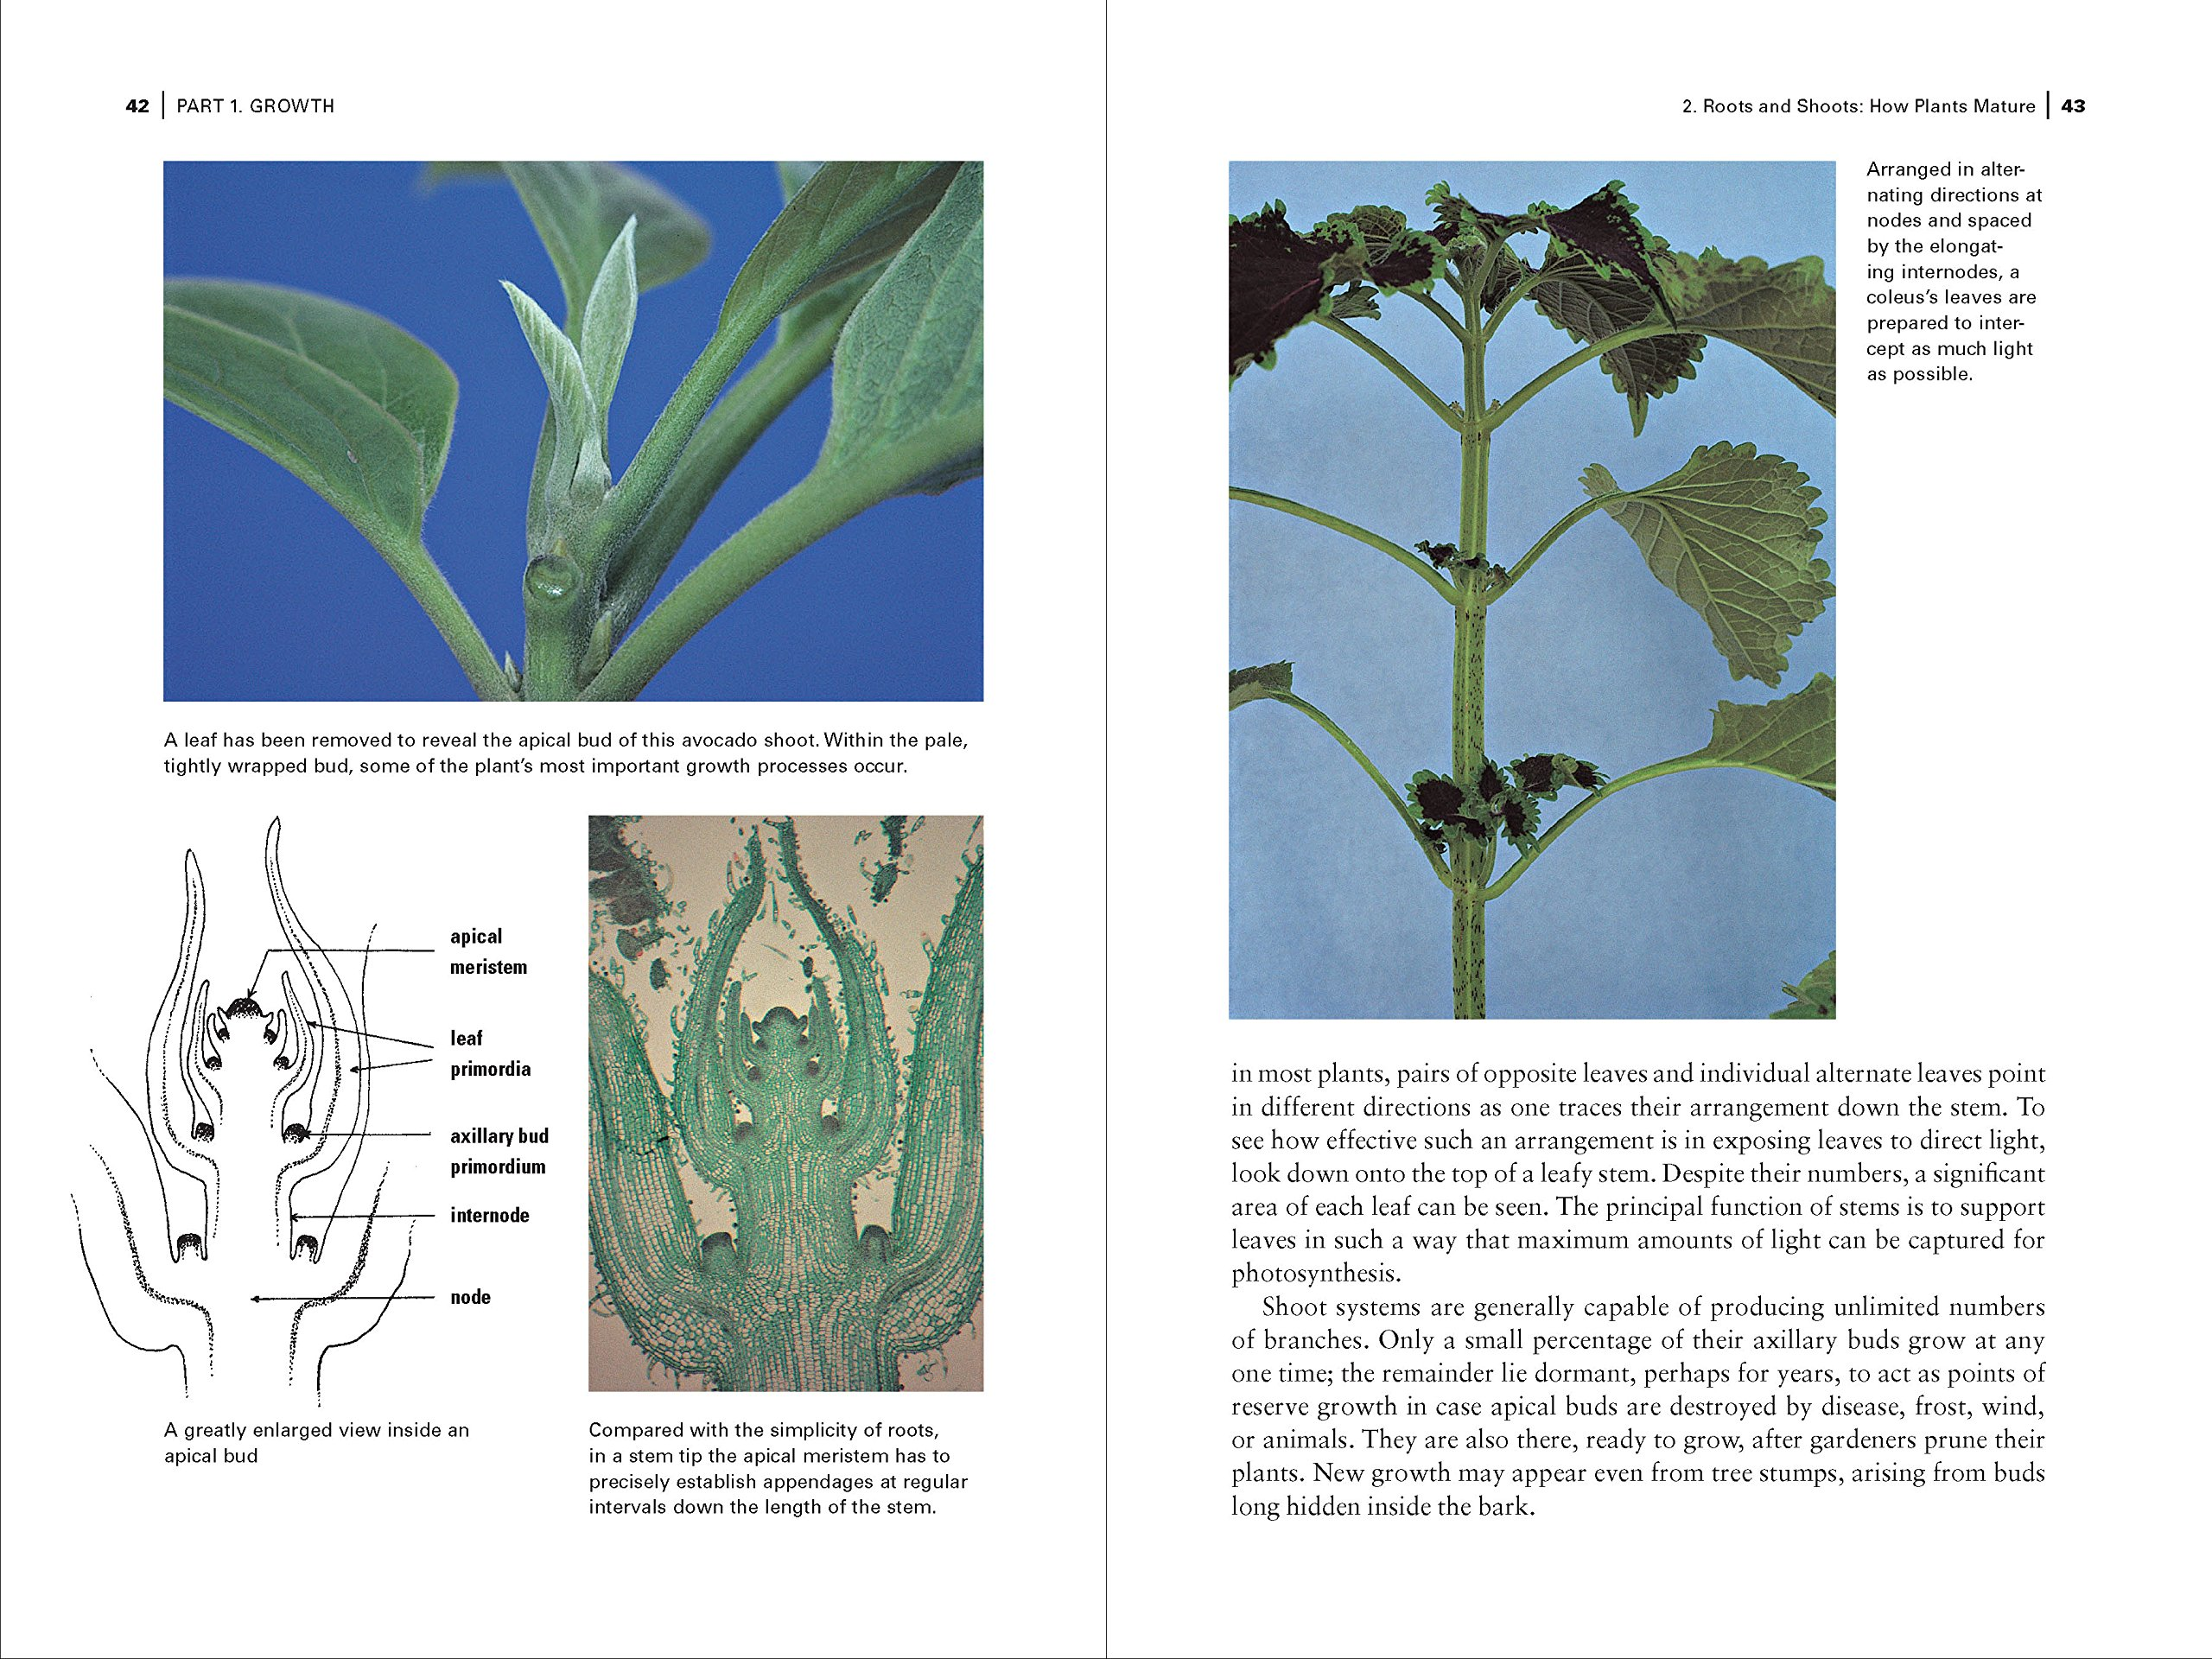 The botany coloring book by paul young - Botany For Gardeners Third Edition Brian Capon 9781604690958 Books Amazon Ca